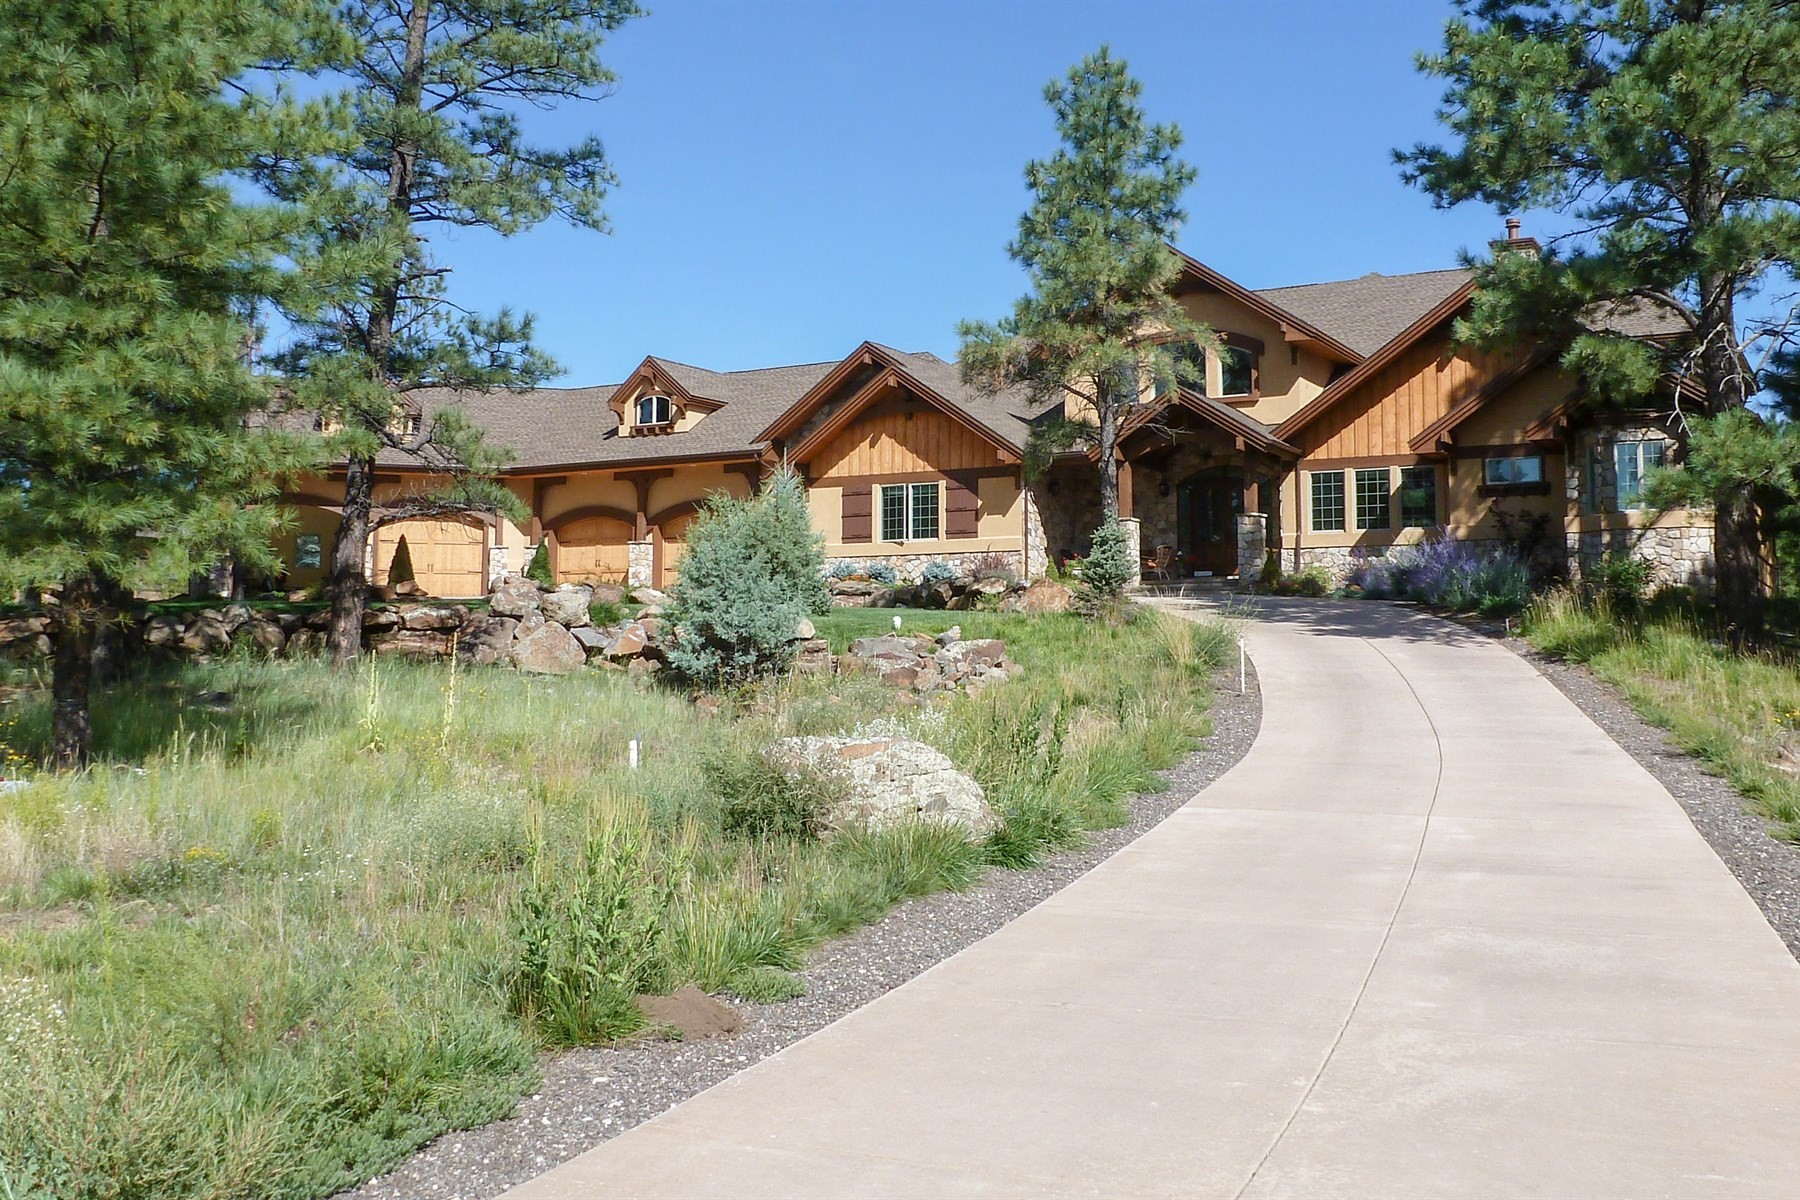 Single Family Home for Sale at Beautiful Lockett Ranch home 205 E Flat Rock Flagstaff, Arizona, 86001 United States